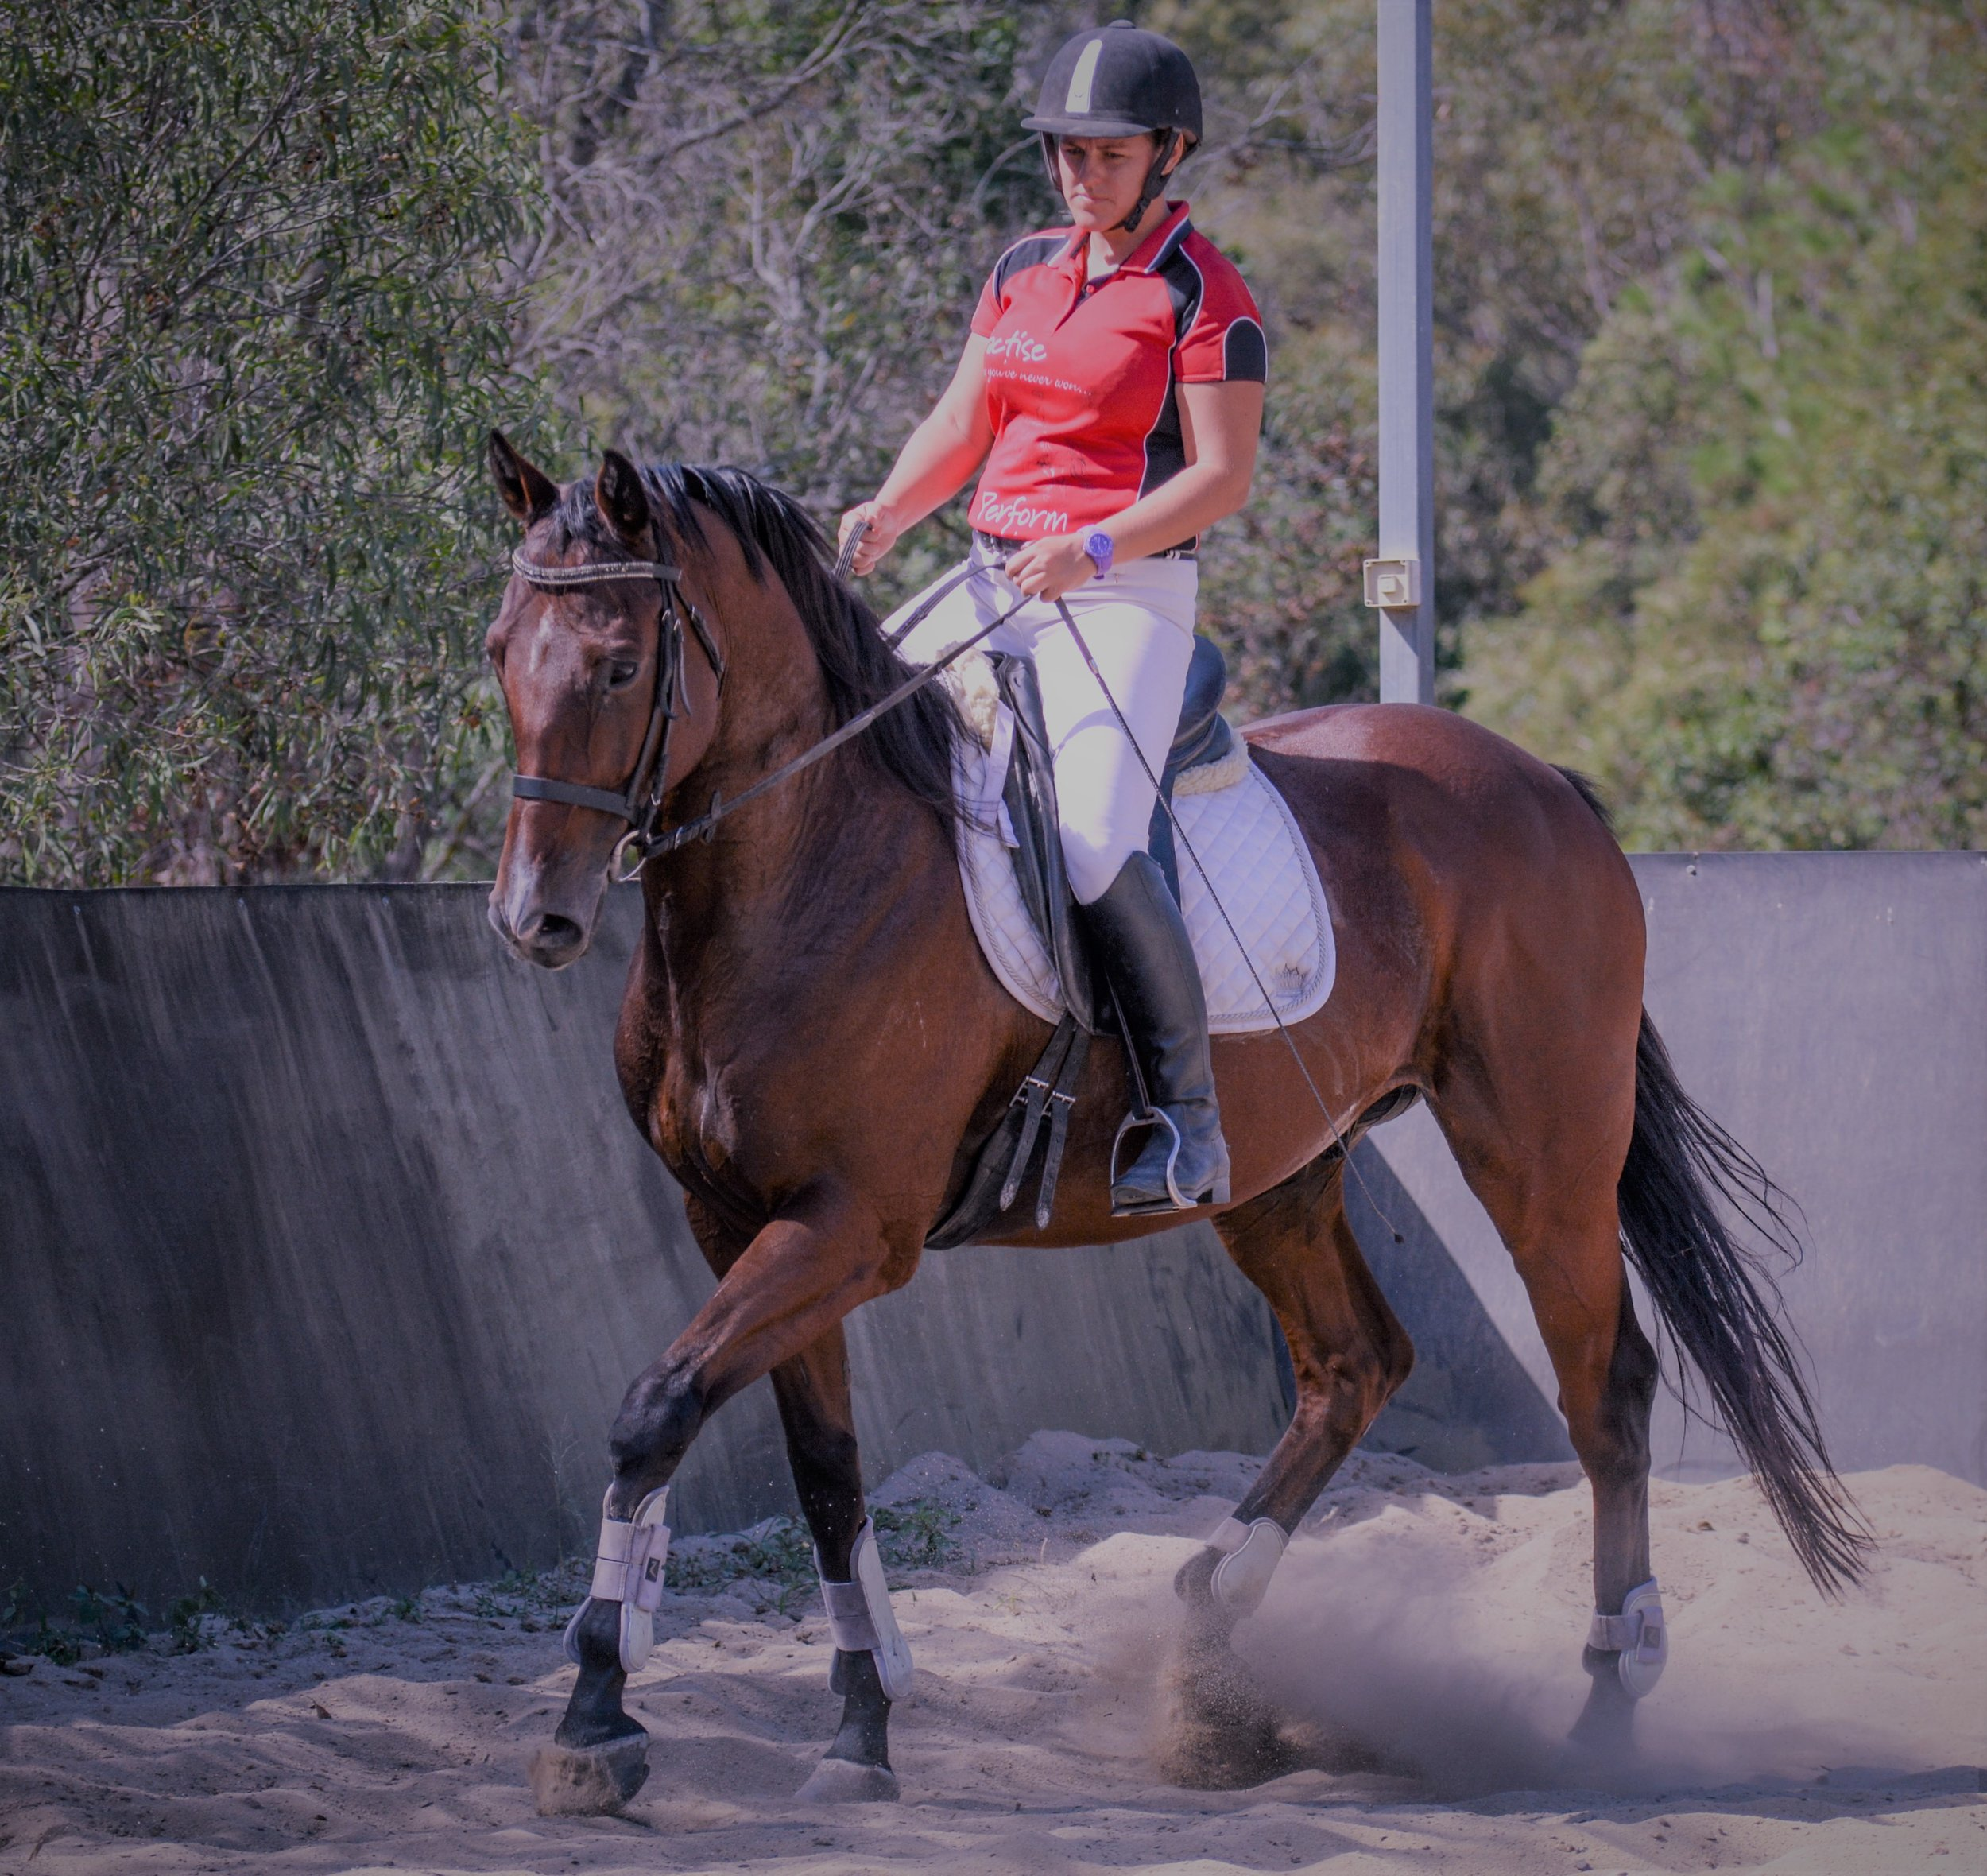 the release of pressure allows your horse to learn